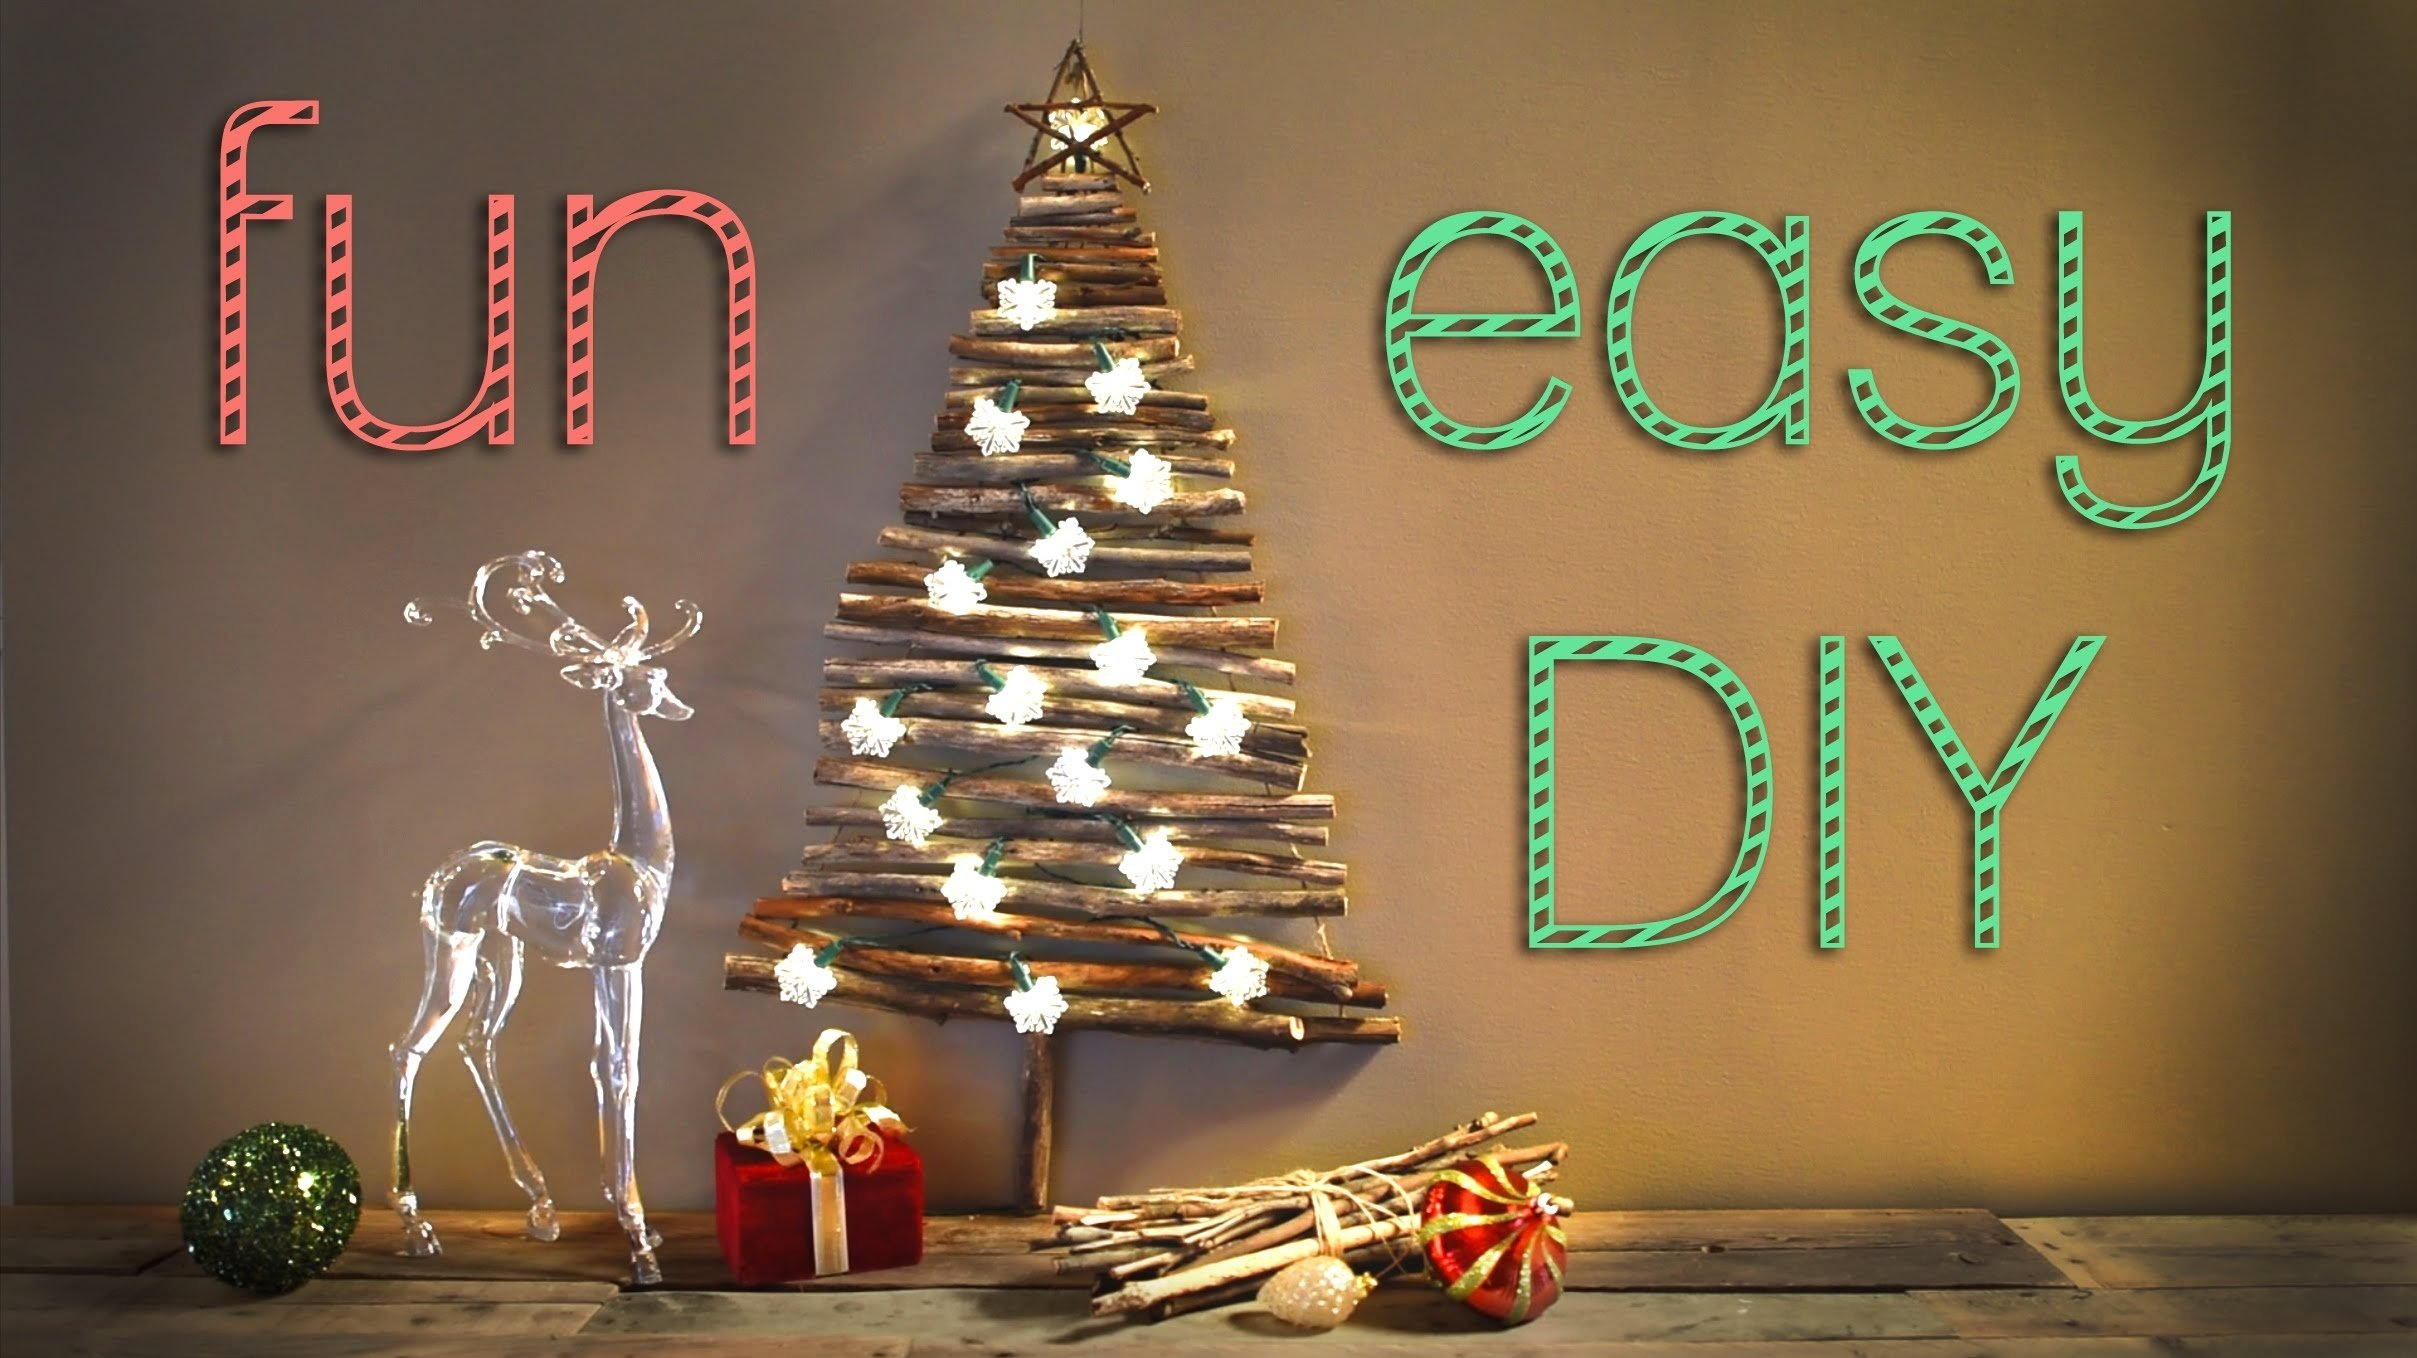 10 Lovely Christmas Decoration Ideas For Apartments christmas decorations creative christmas tree for small apartments 2020